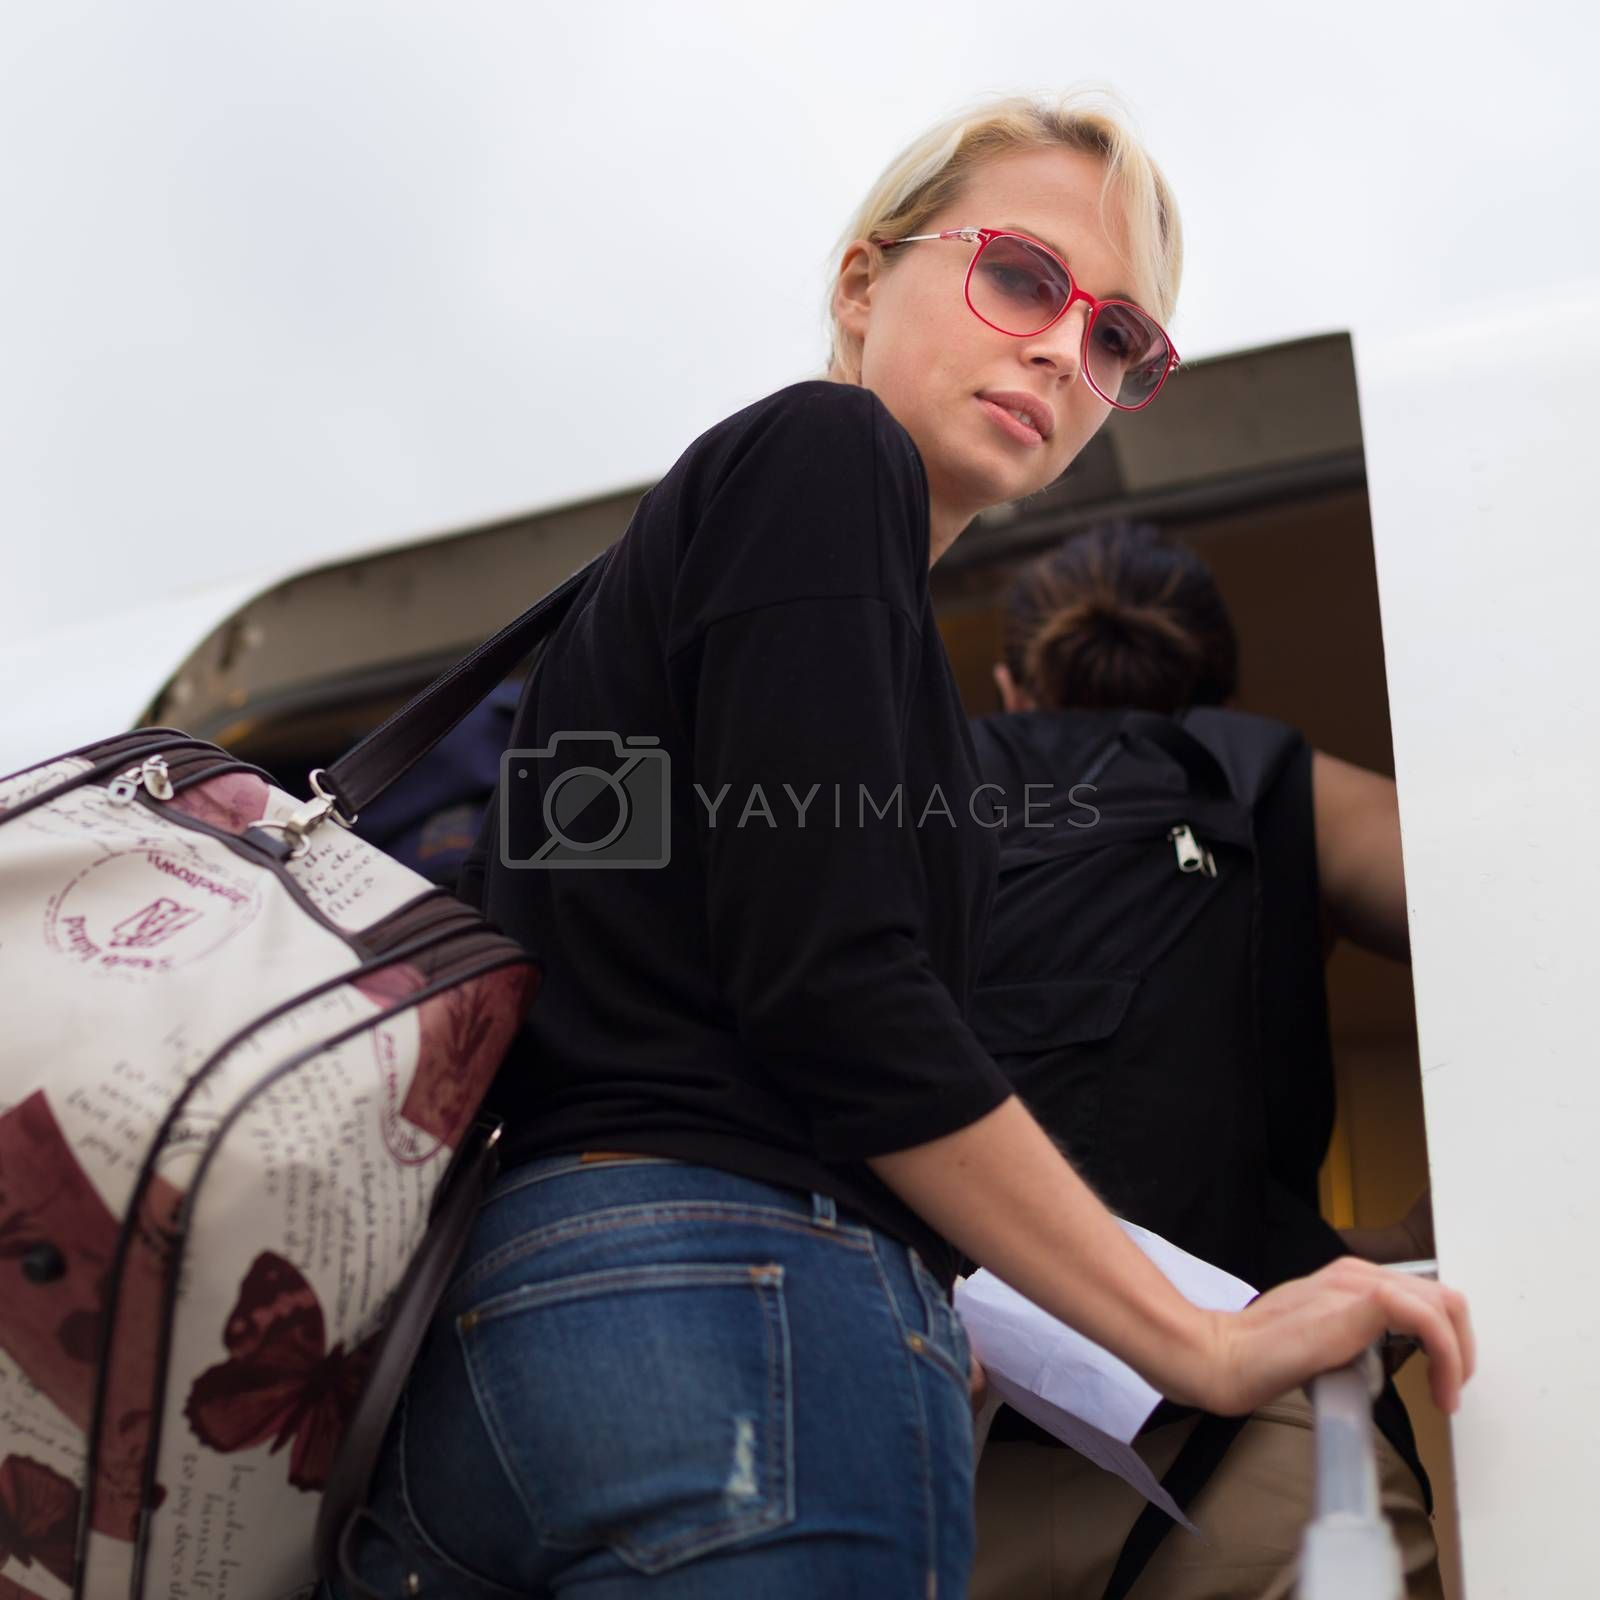 Woman holding carry on luggage queuing to board the commercial airplane.